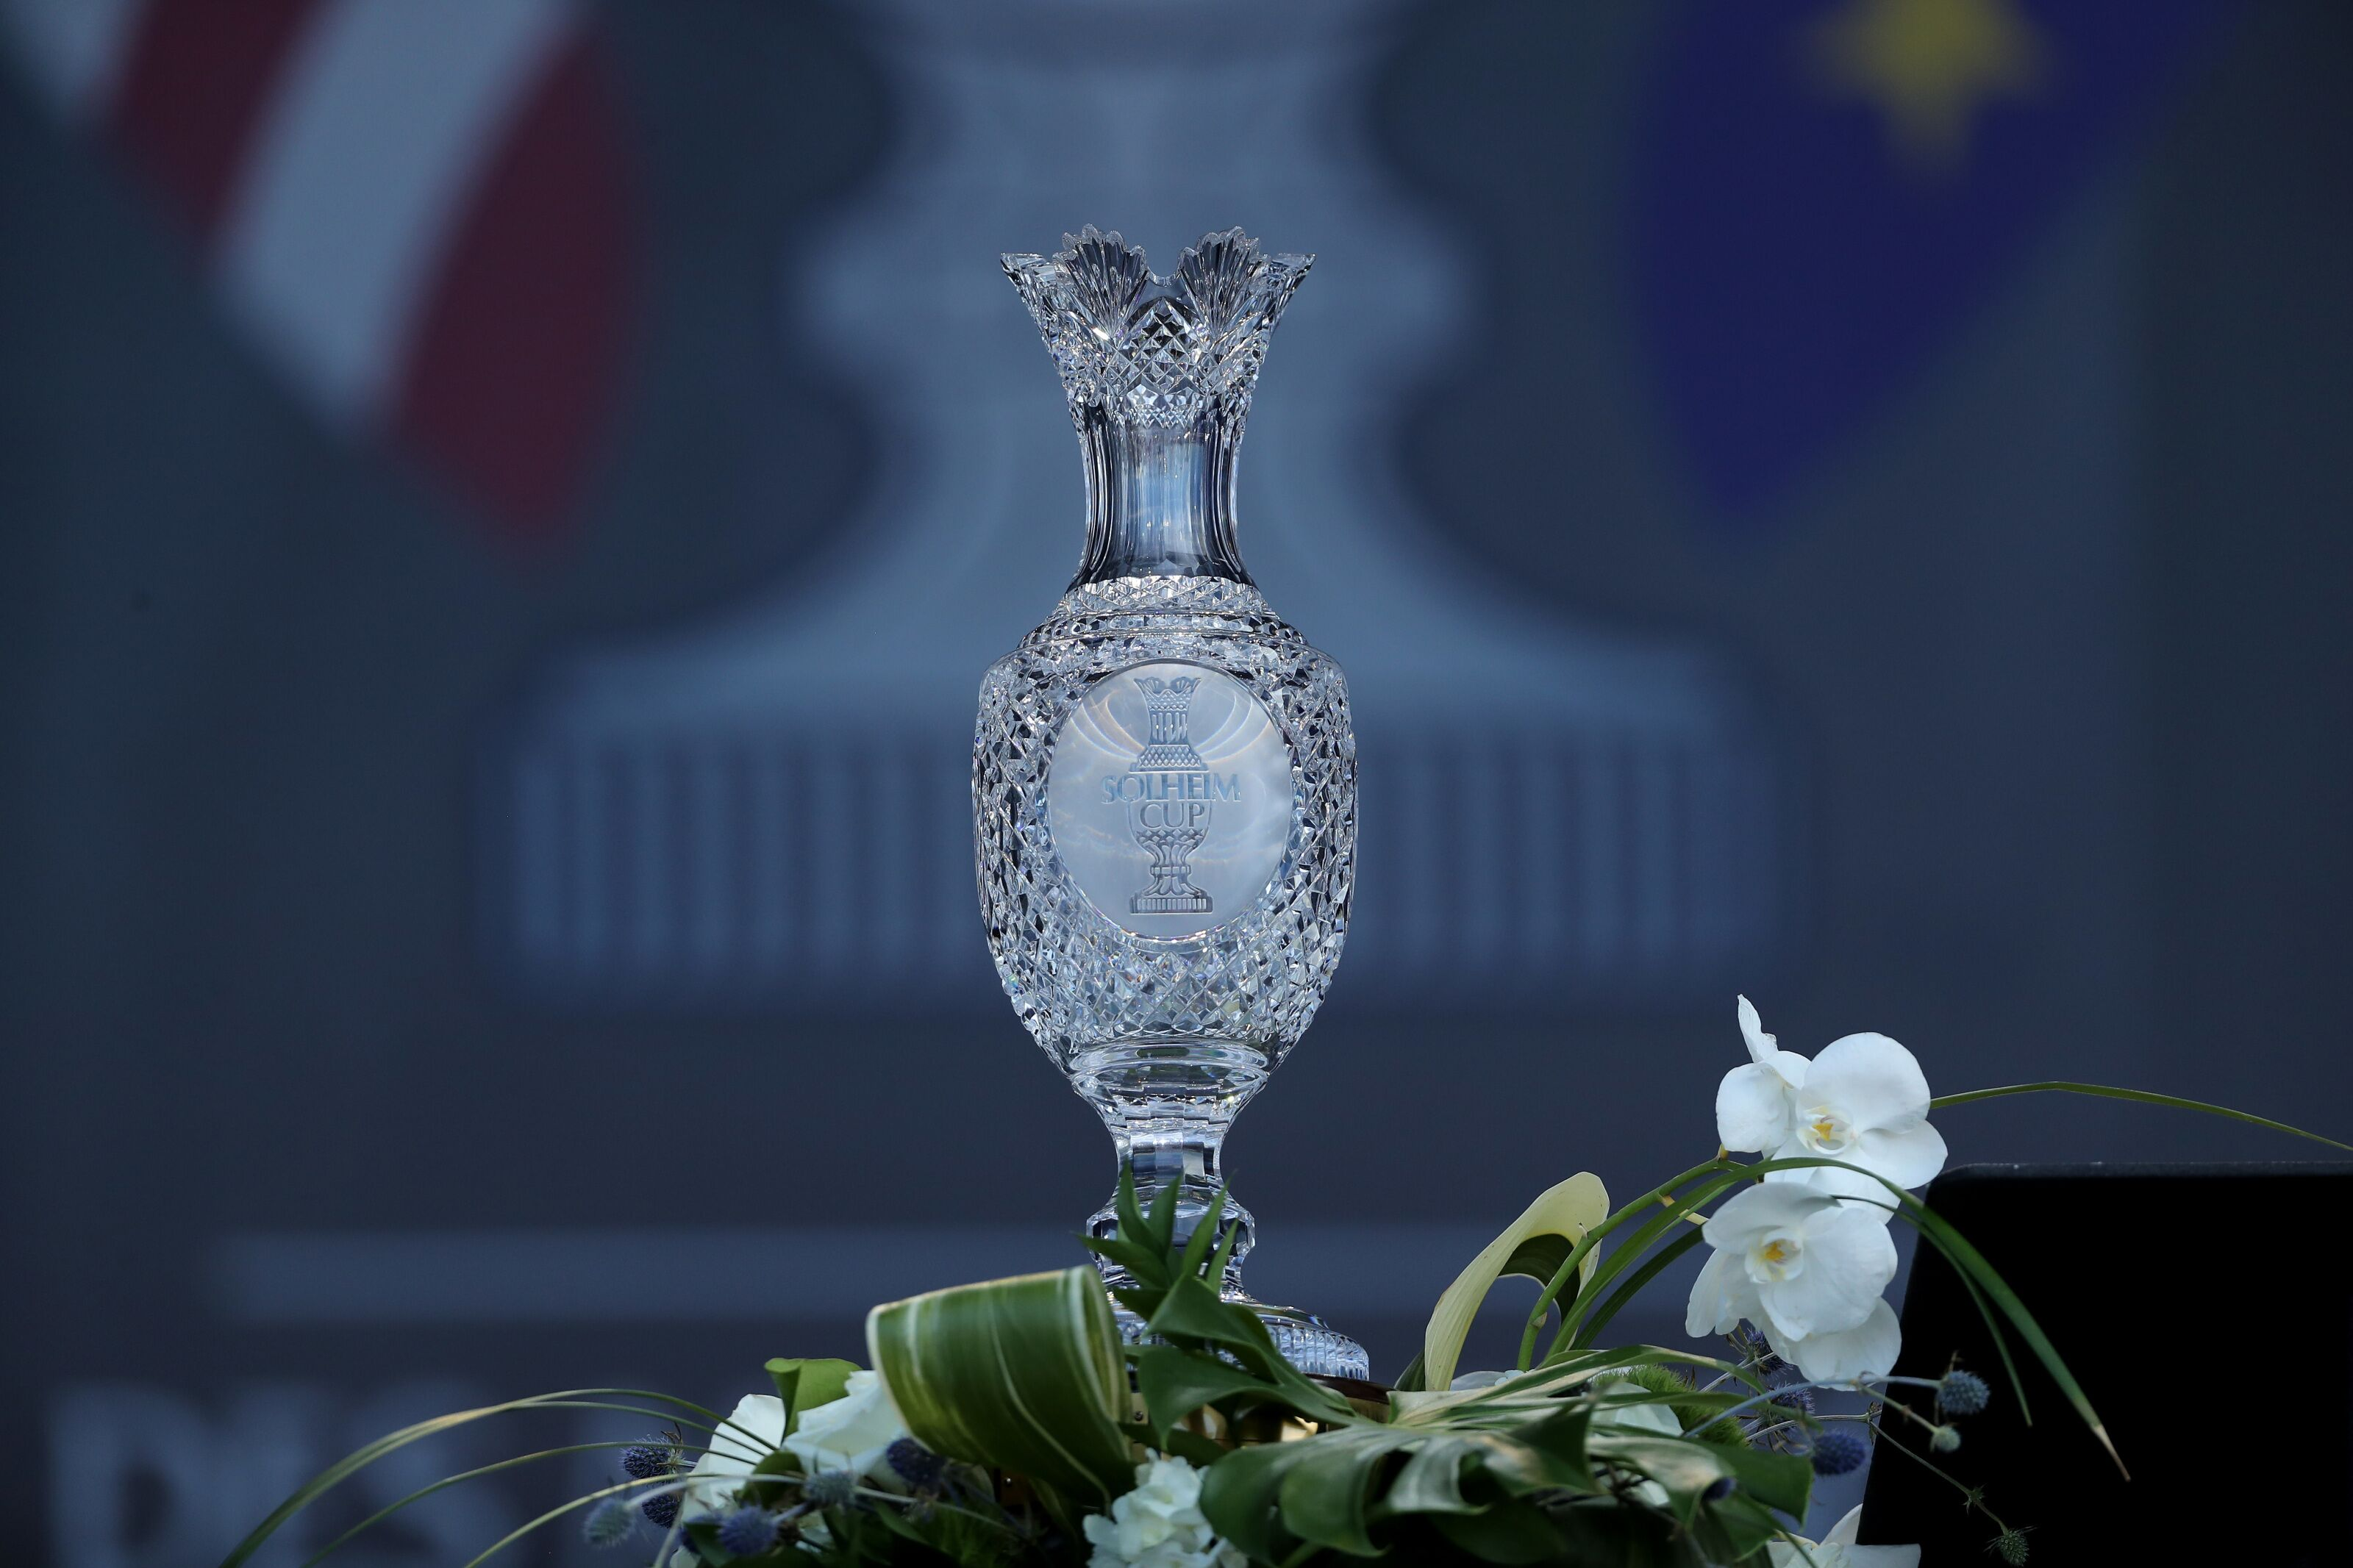 Solheim Cup countdown: Team USA standings